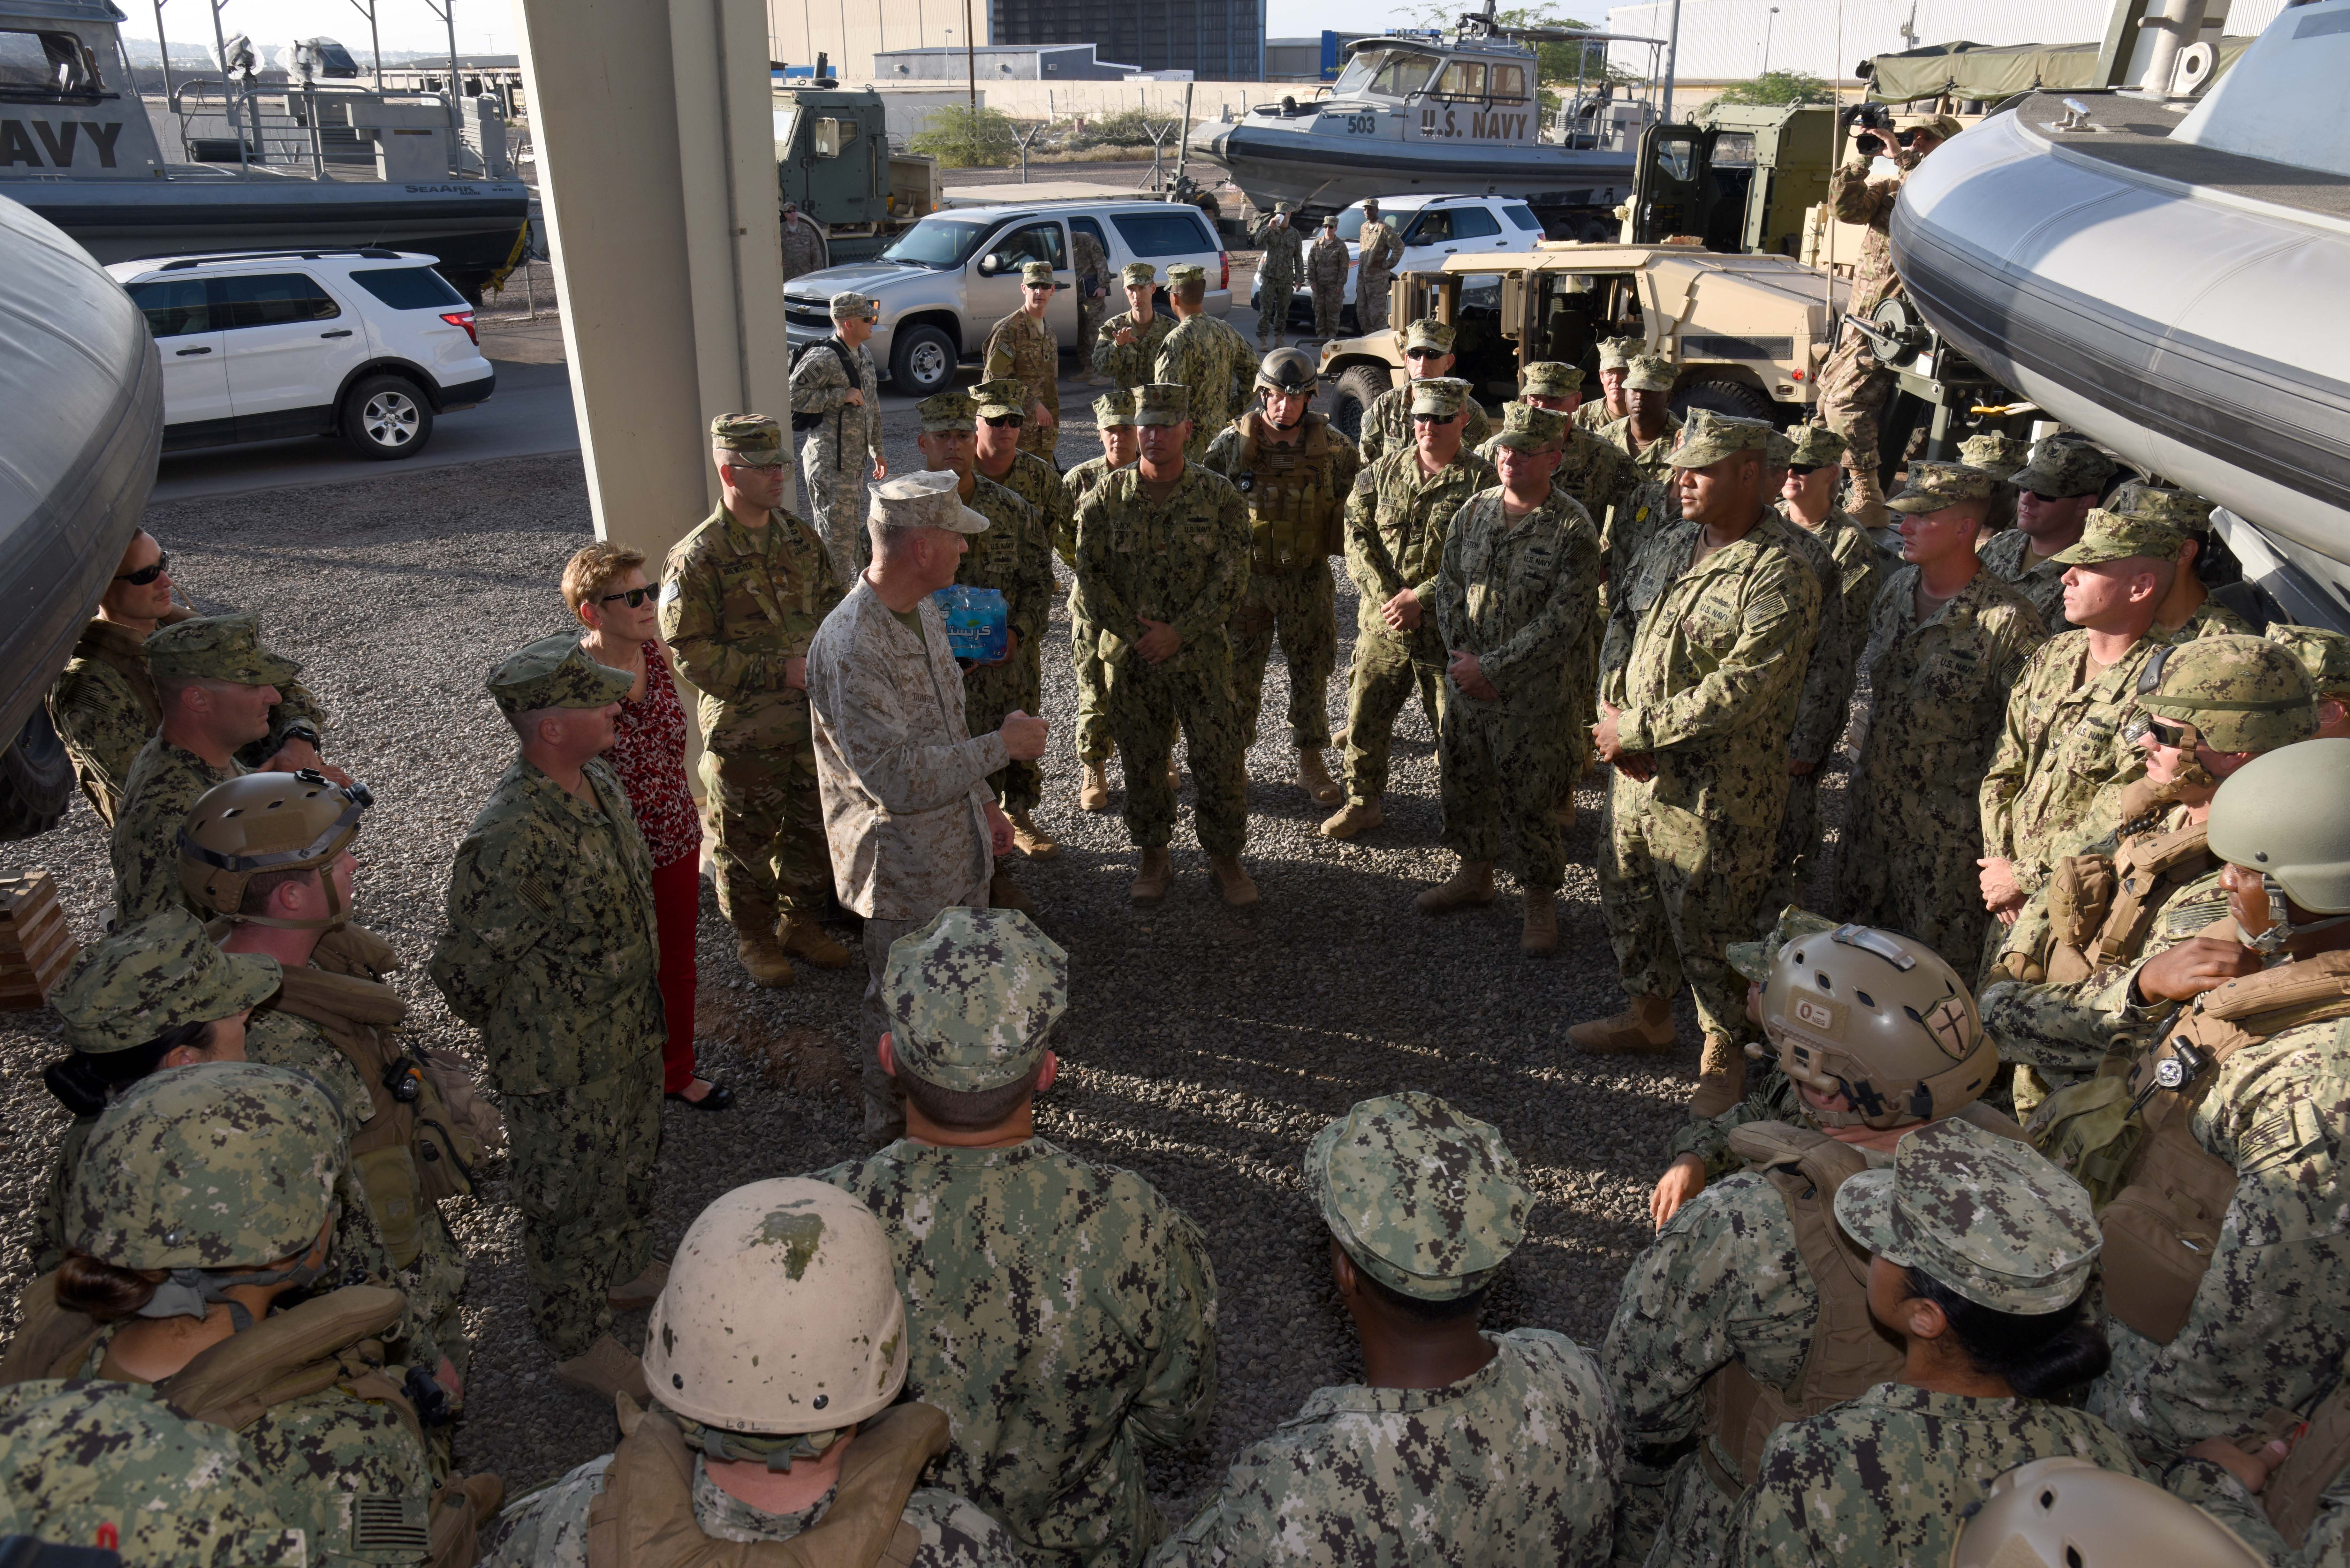 Marine Corps Gen. Joseph Dunford, Chairman of the Joint Chiefs of Staff, speaks to sailors from the Coastal Riverine Squadron 10 during his visit as part of the 2015 USO entertainment troupe tour at Camp Lemonnier, Djibouti, Dec. 6, 2015. The Riverines' primary mission is to conduct maritime security operations across all phases of military operations by defending high value assets, critical maritime infrastructure, ports and harbors - both inland and on coastal waterways. (U.S. Air Force photo by Staff Sgt. Victoria Sneed)